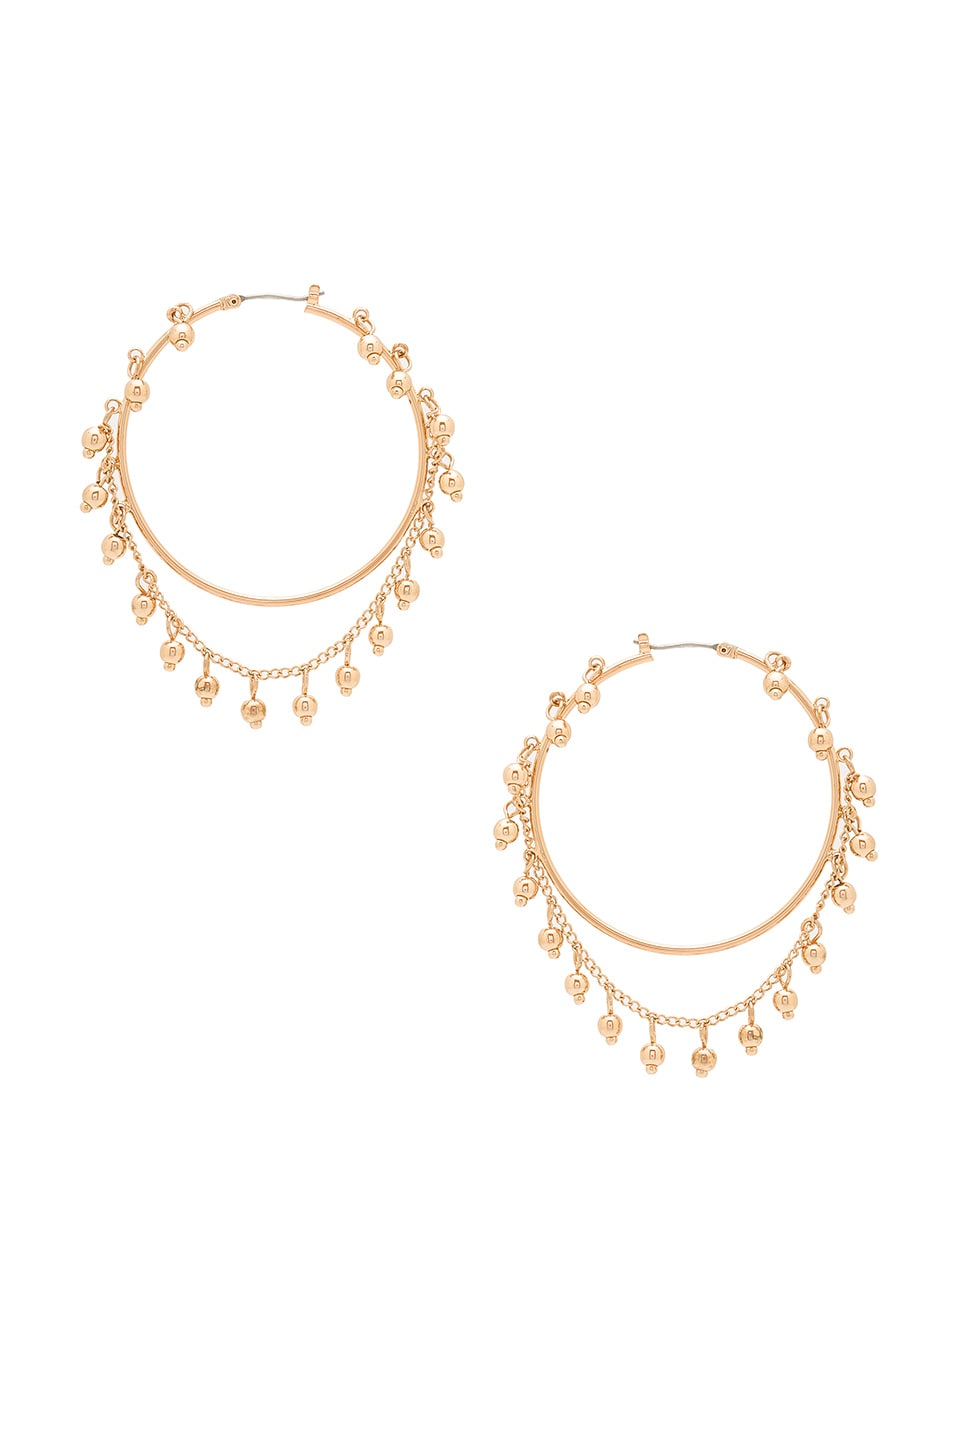 Samantha Wills Nightfall Hoop Earrings in Shiny Gold